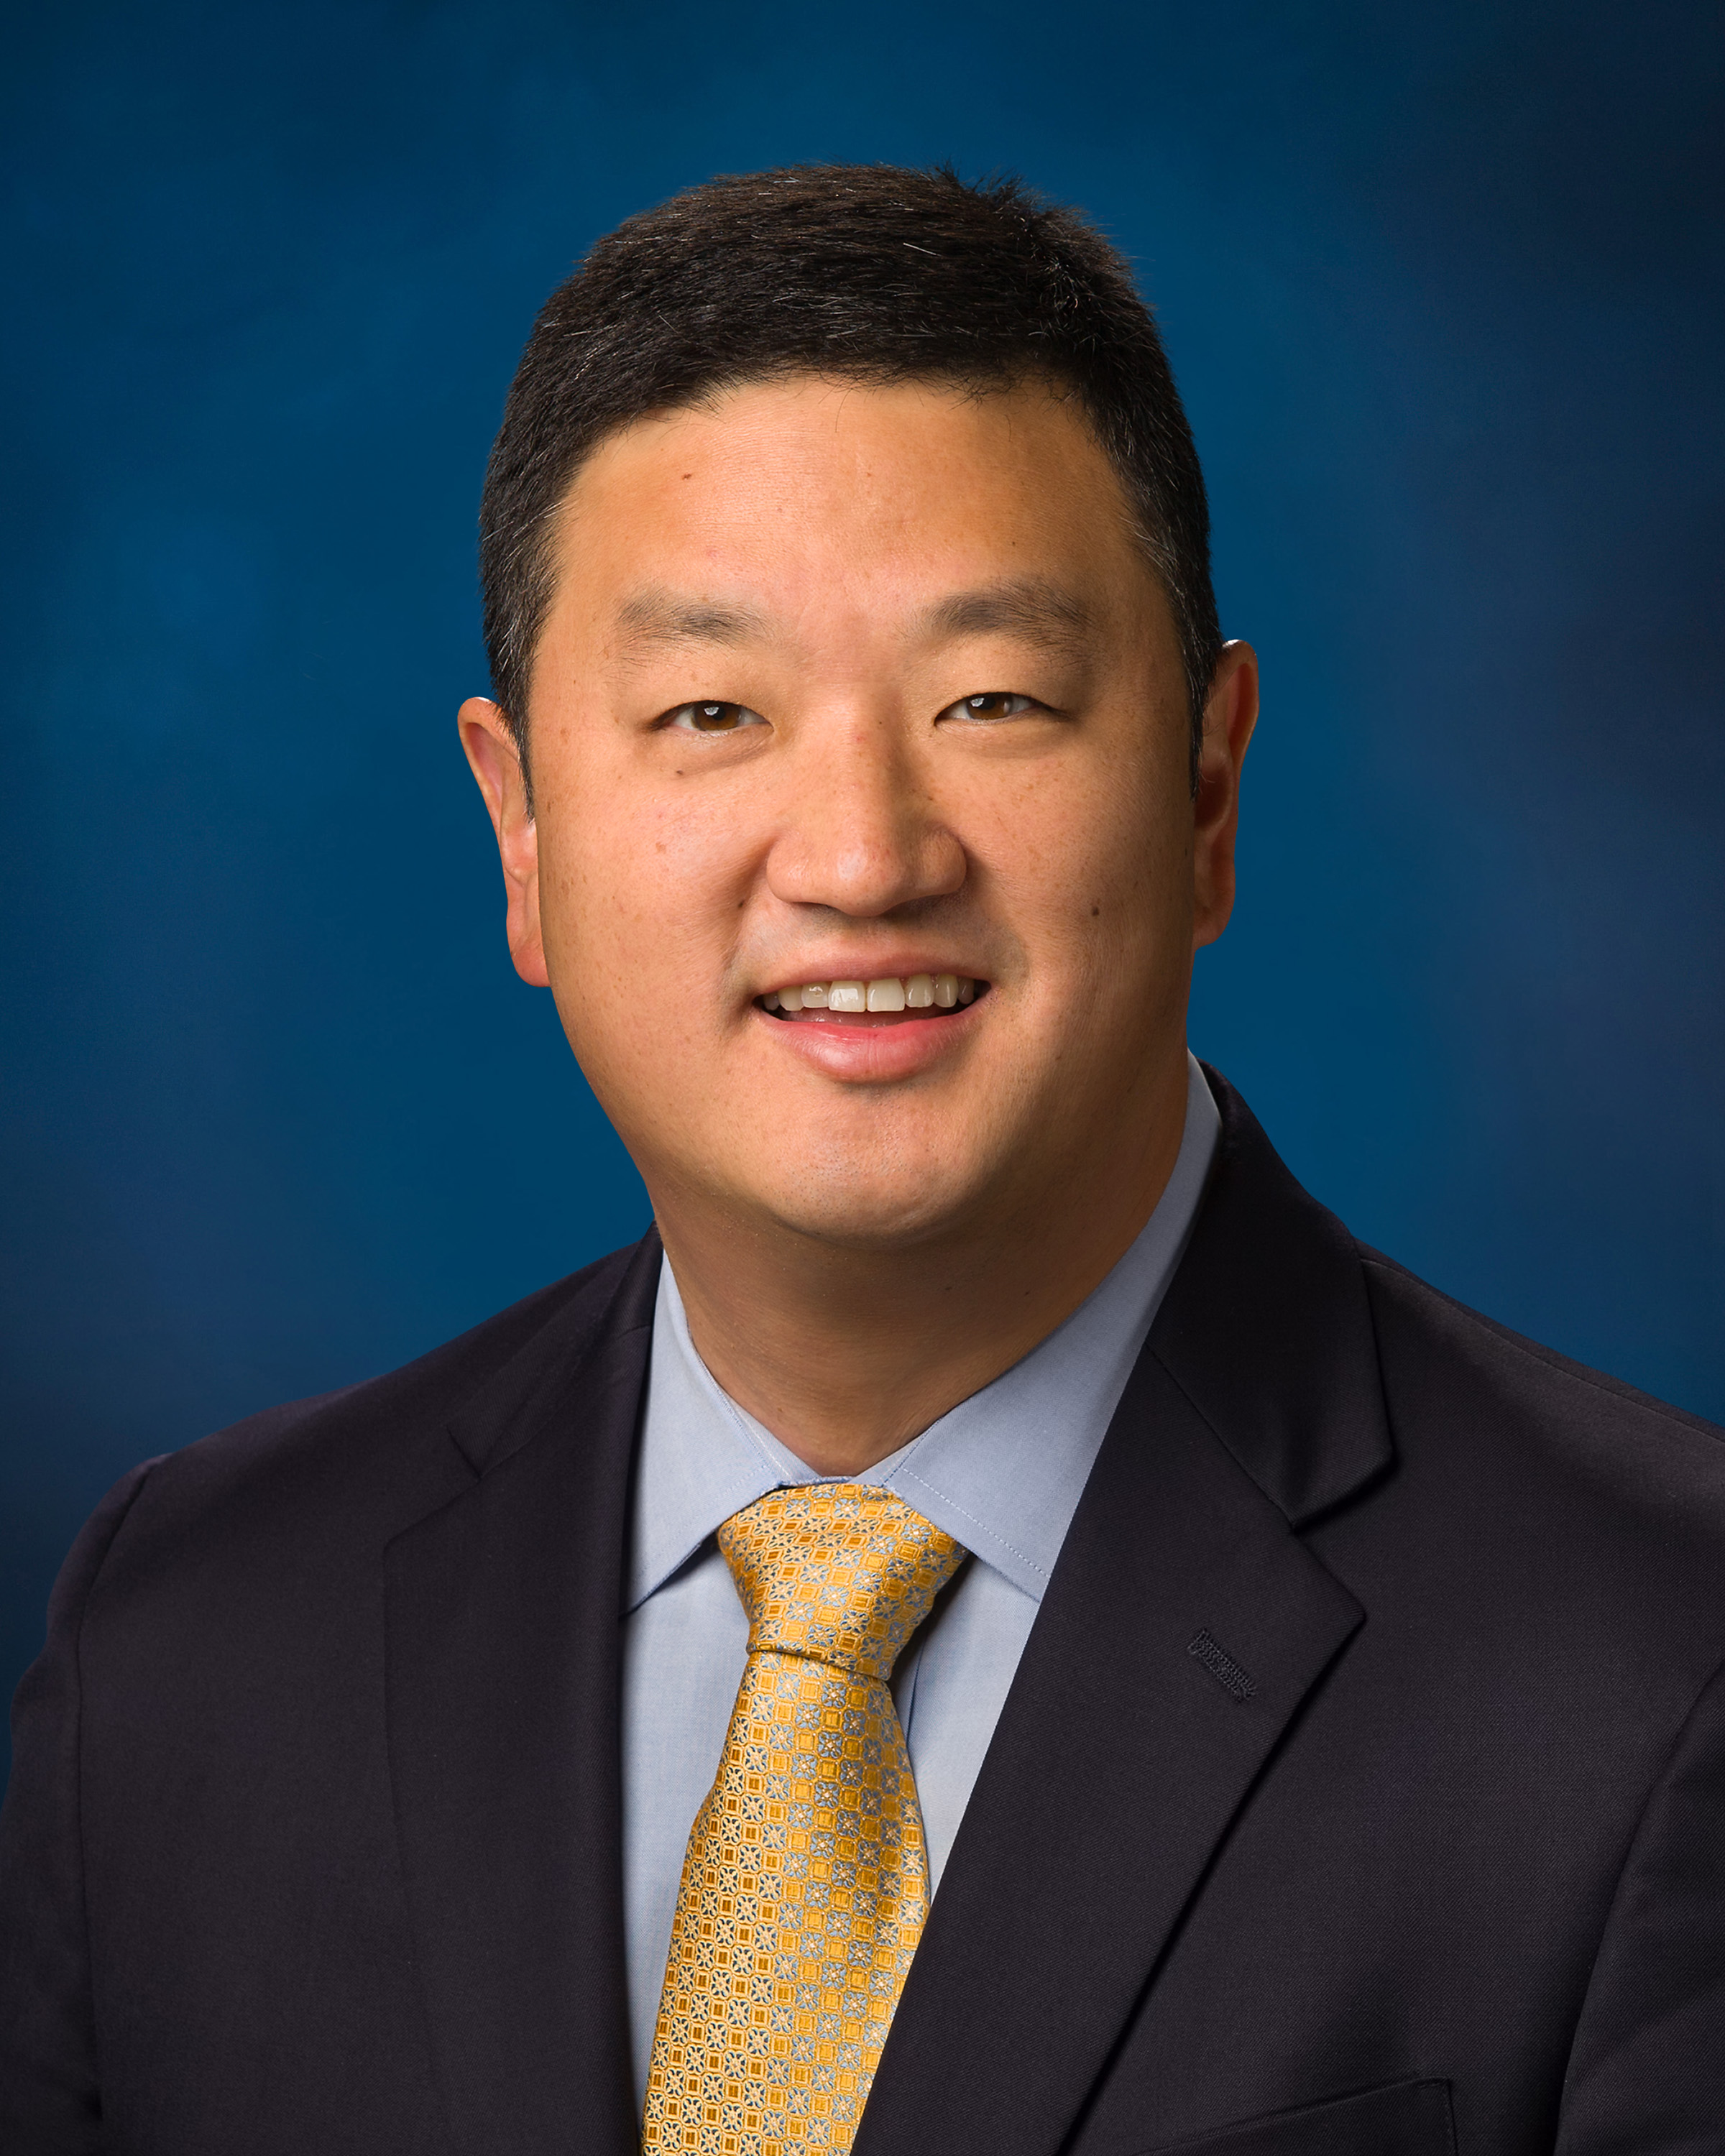 Photo of Edward Sim, President, Physician Integration